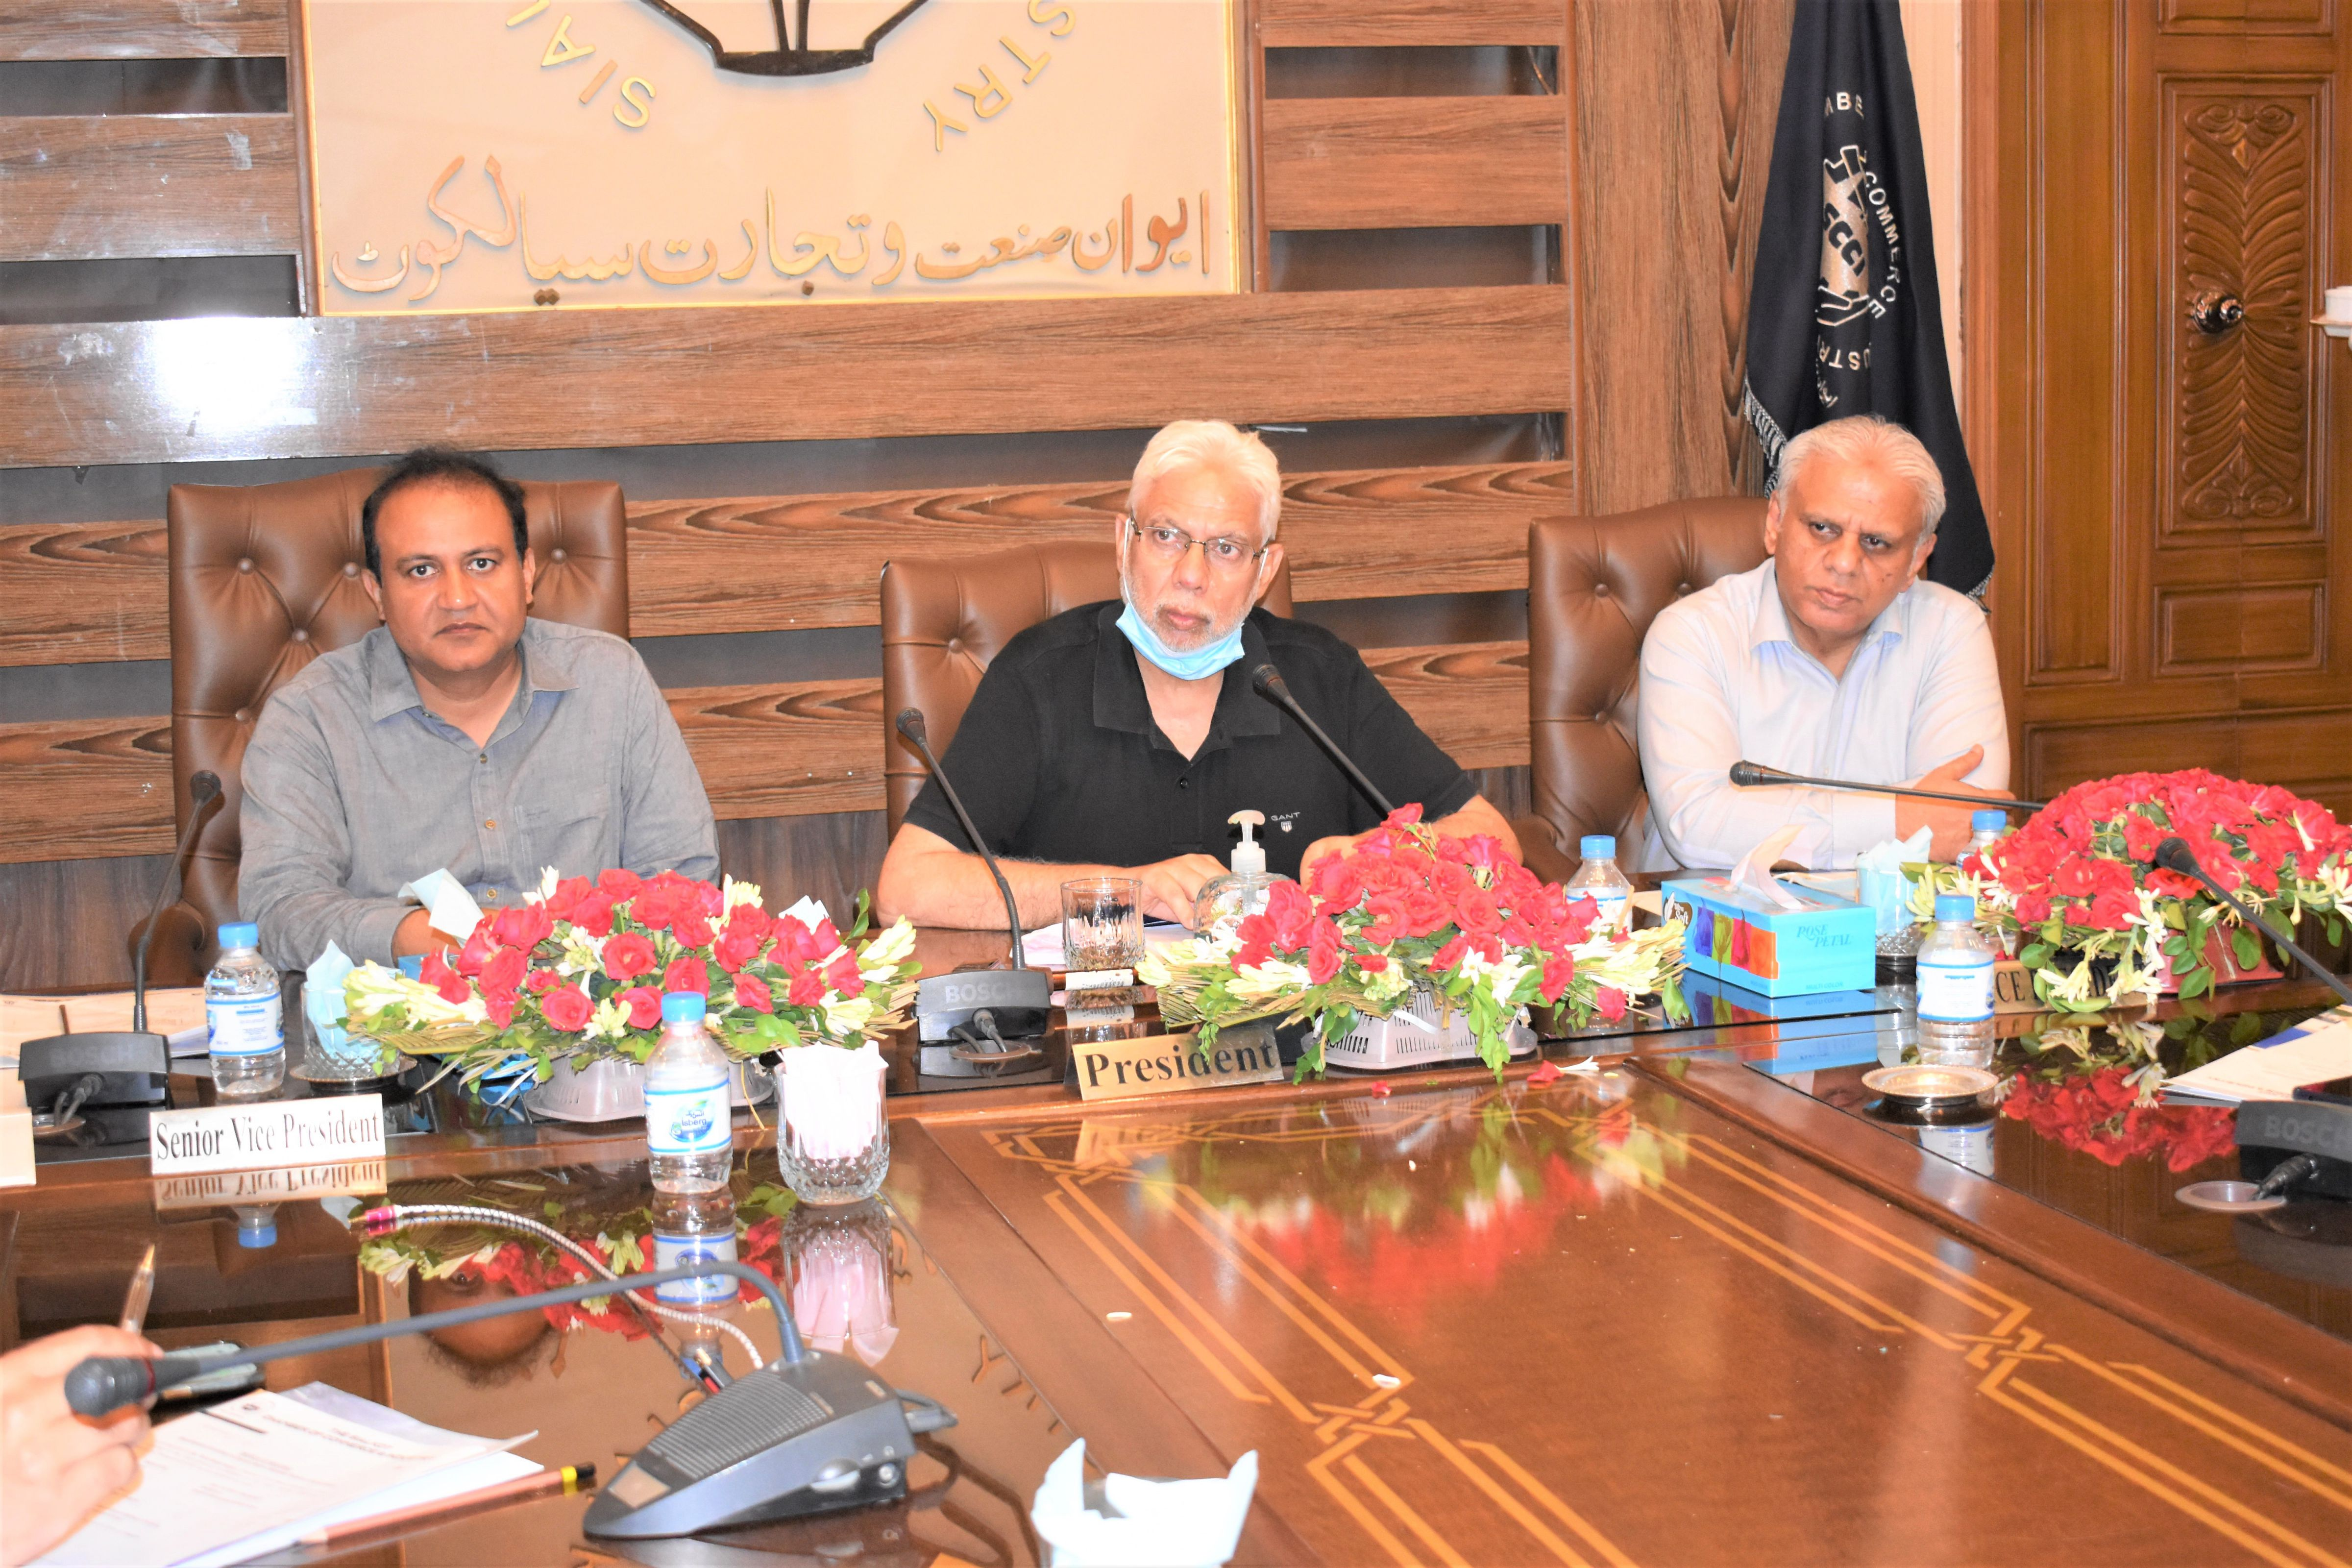 On July 15, 2021, Meeting of Departmental Committee on Dry port/ Airport/ Shipping/ Railways/ Transportation held at Sialkot Chamber of Commerce & Industry under the chairmanship of Mr. Tahir Majid Kapur, Chairman to discuss issues related to above-mentioned committee.  Mr. Ansar Aziz Puri, Vice President SCCI also participated in the discussion.